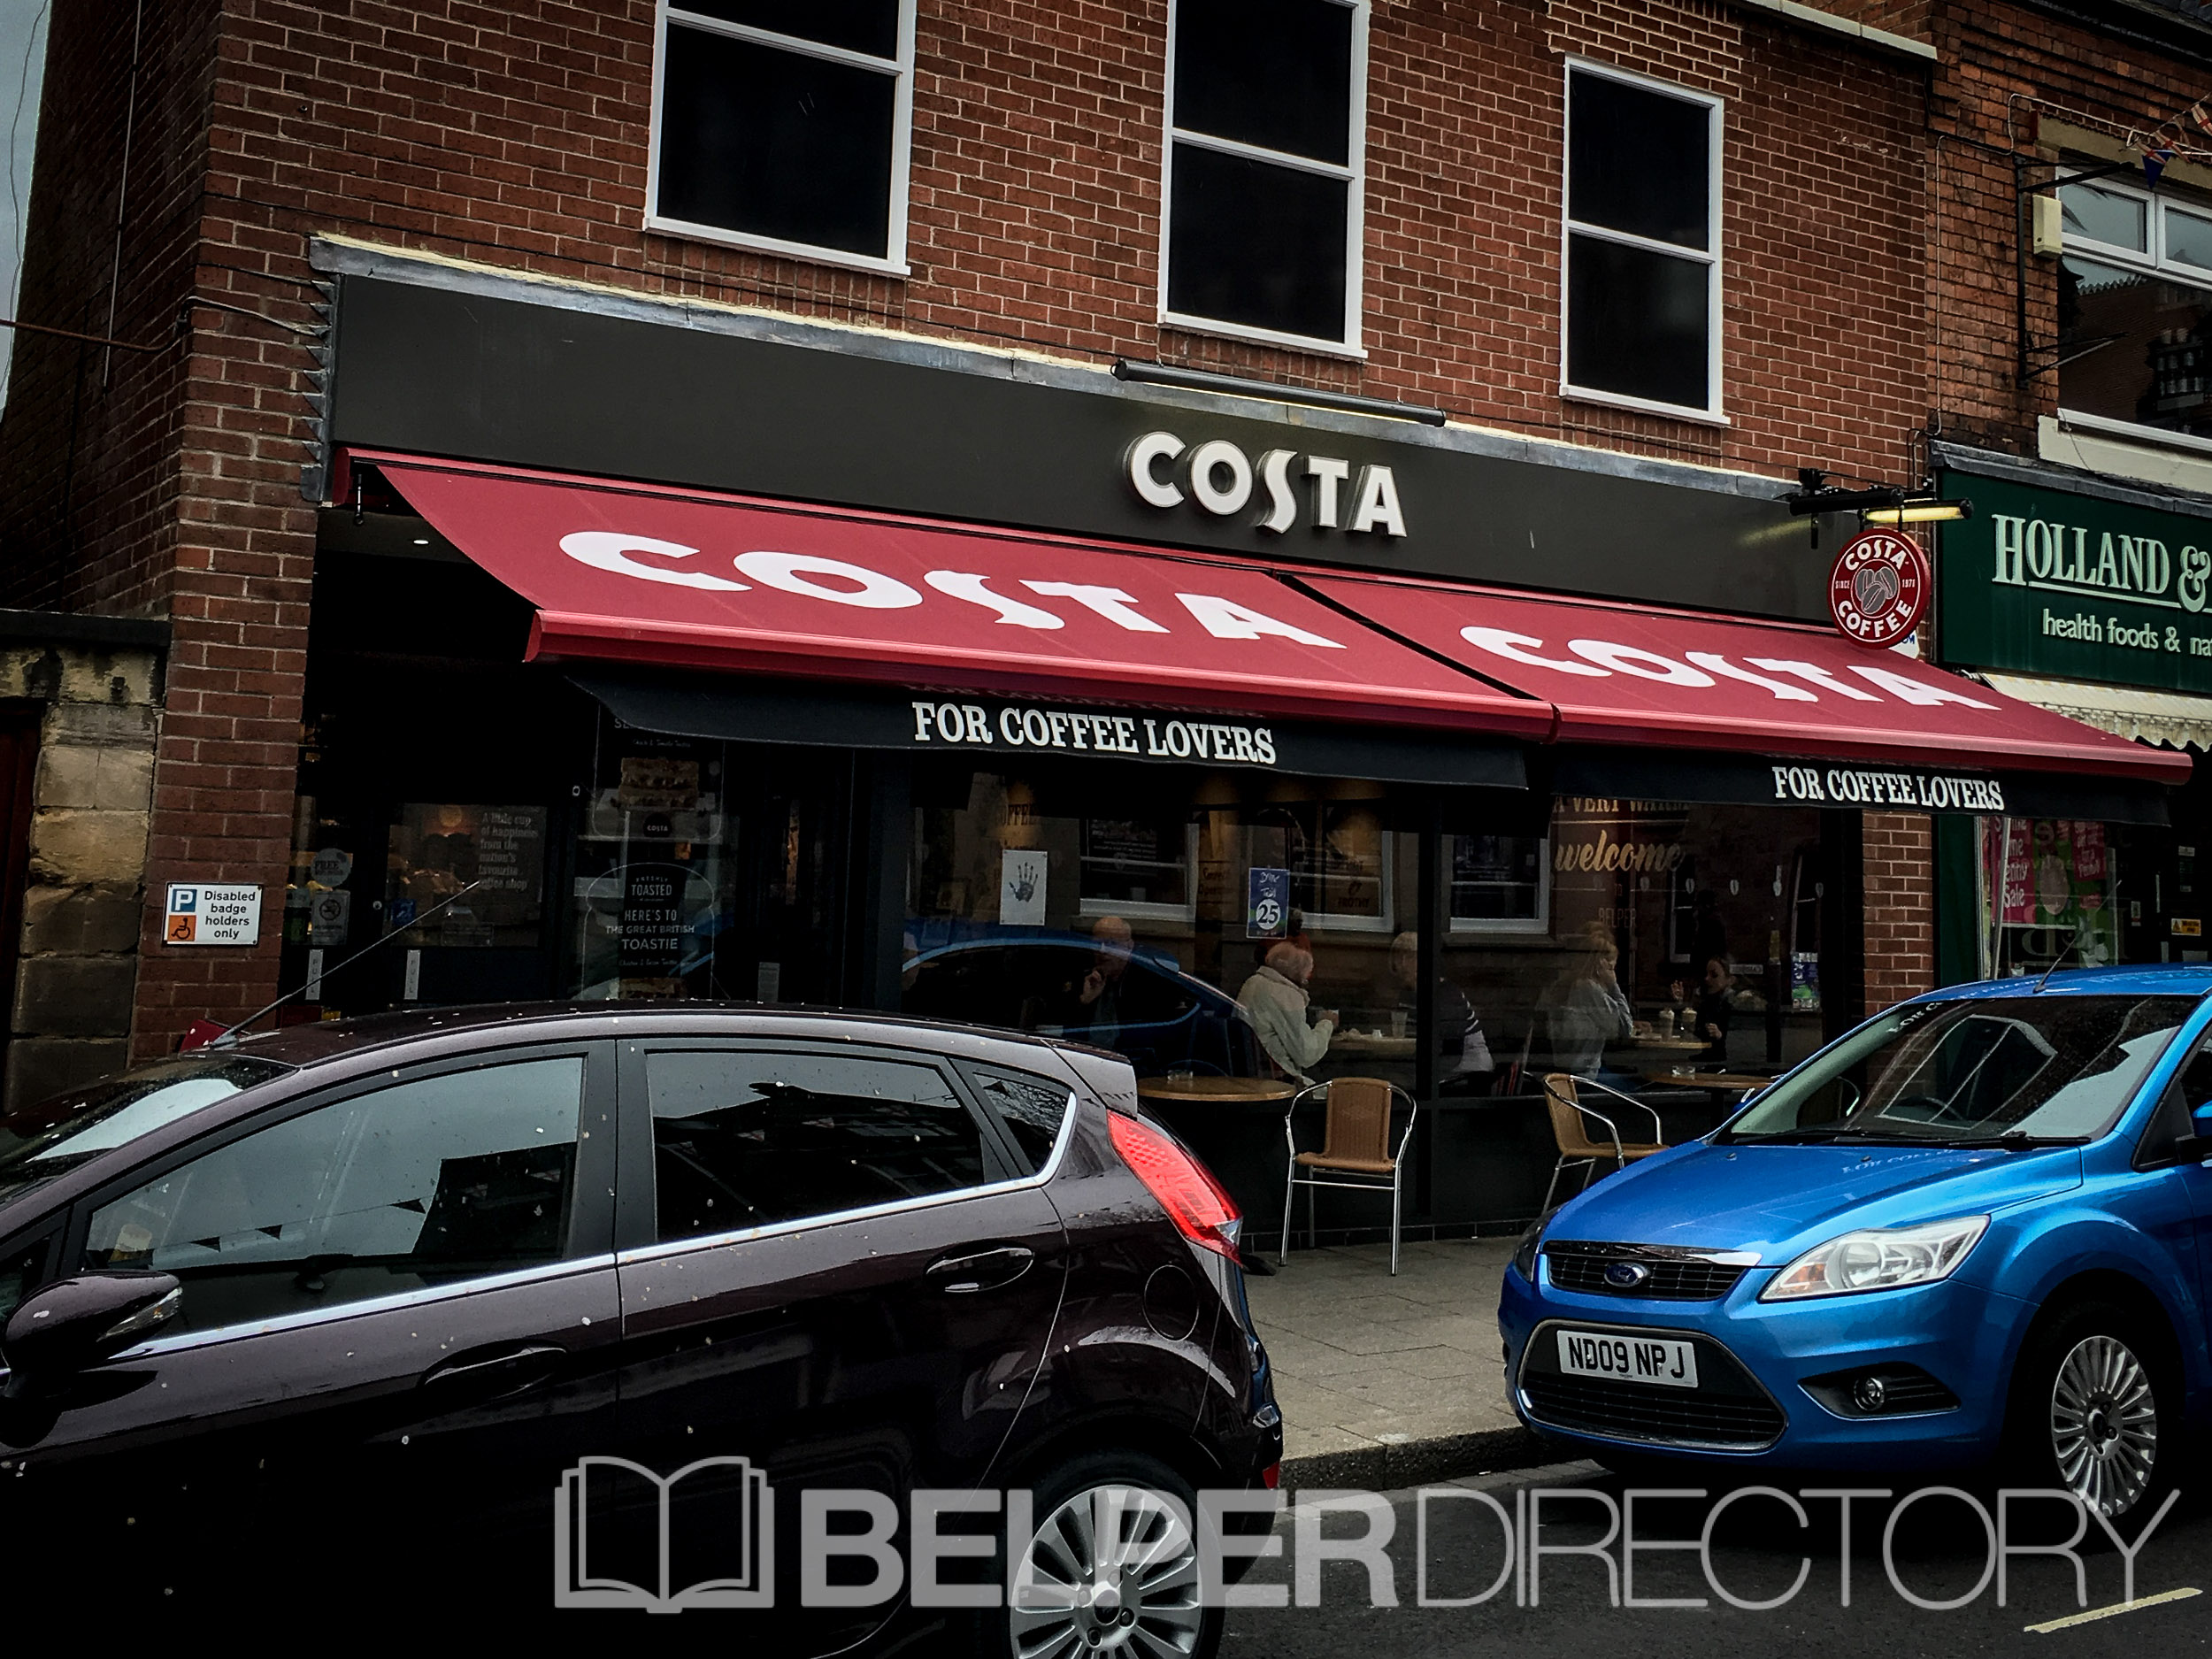 Costa Coffee on Inter Search